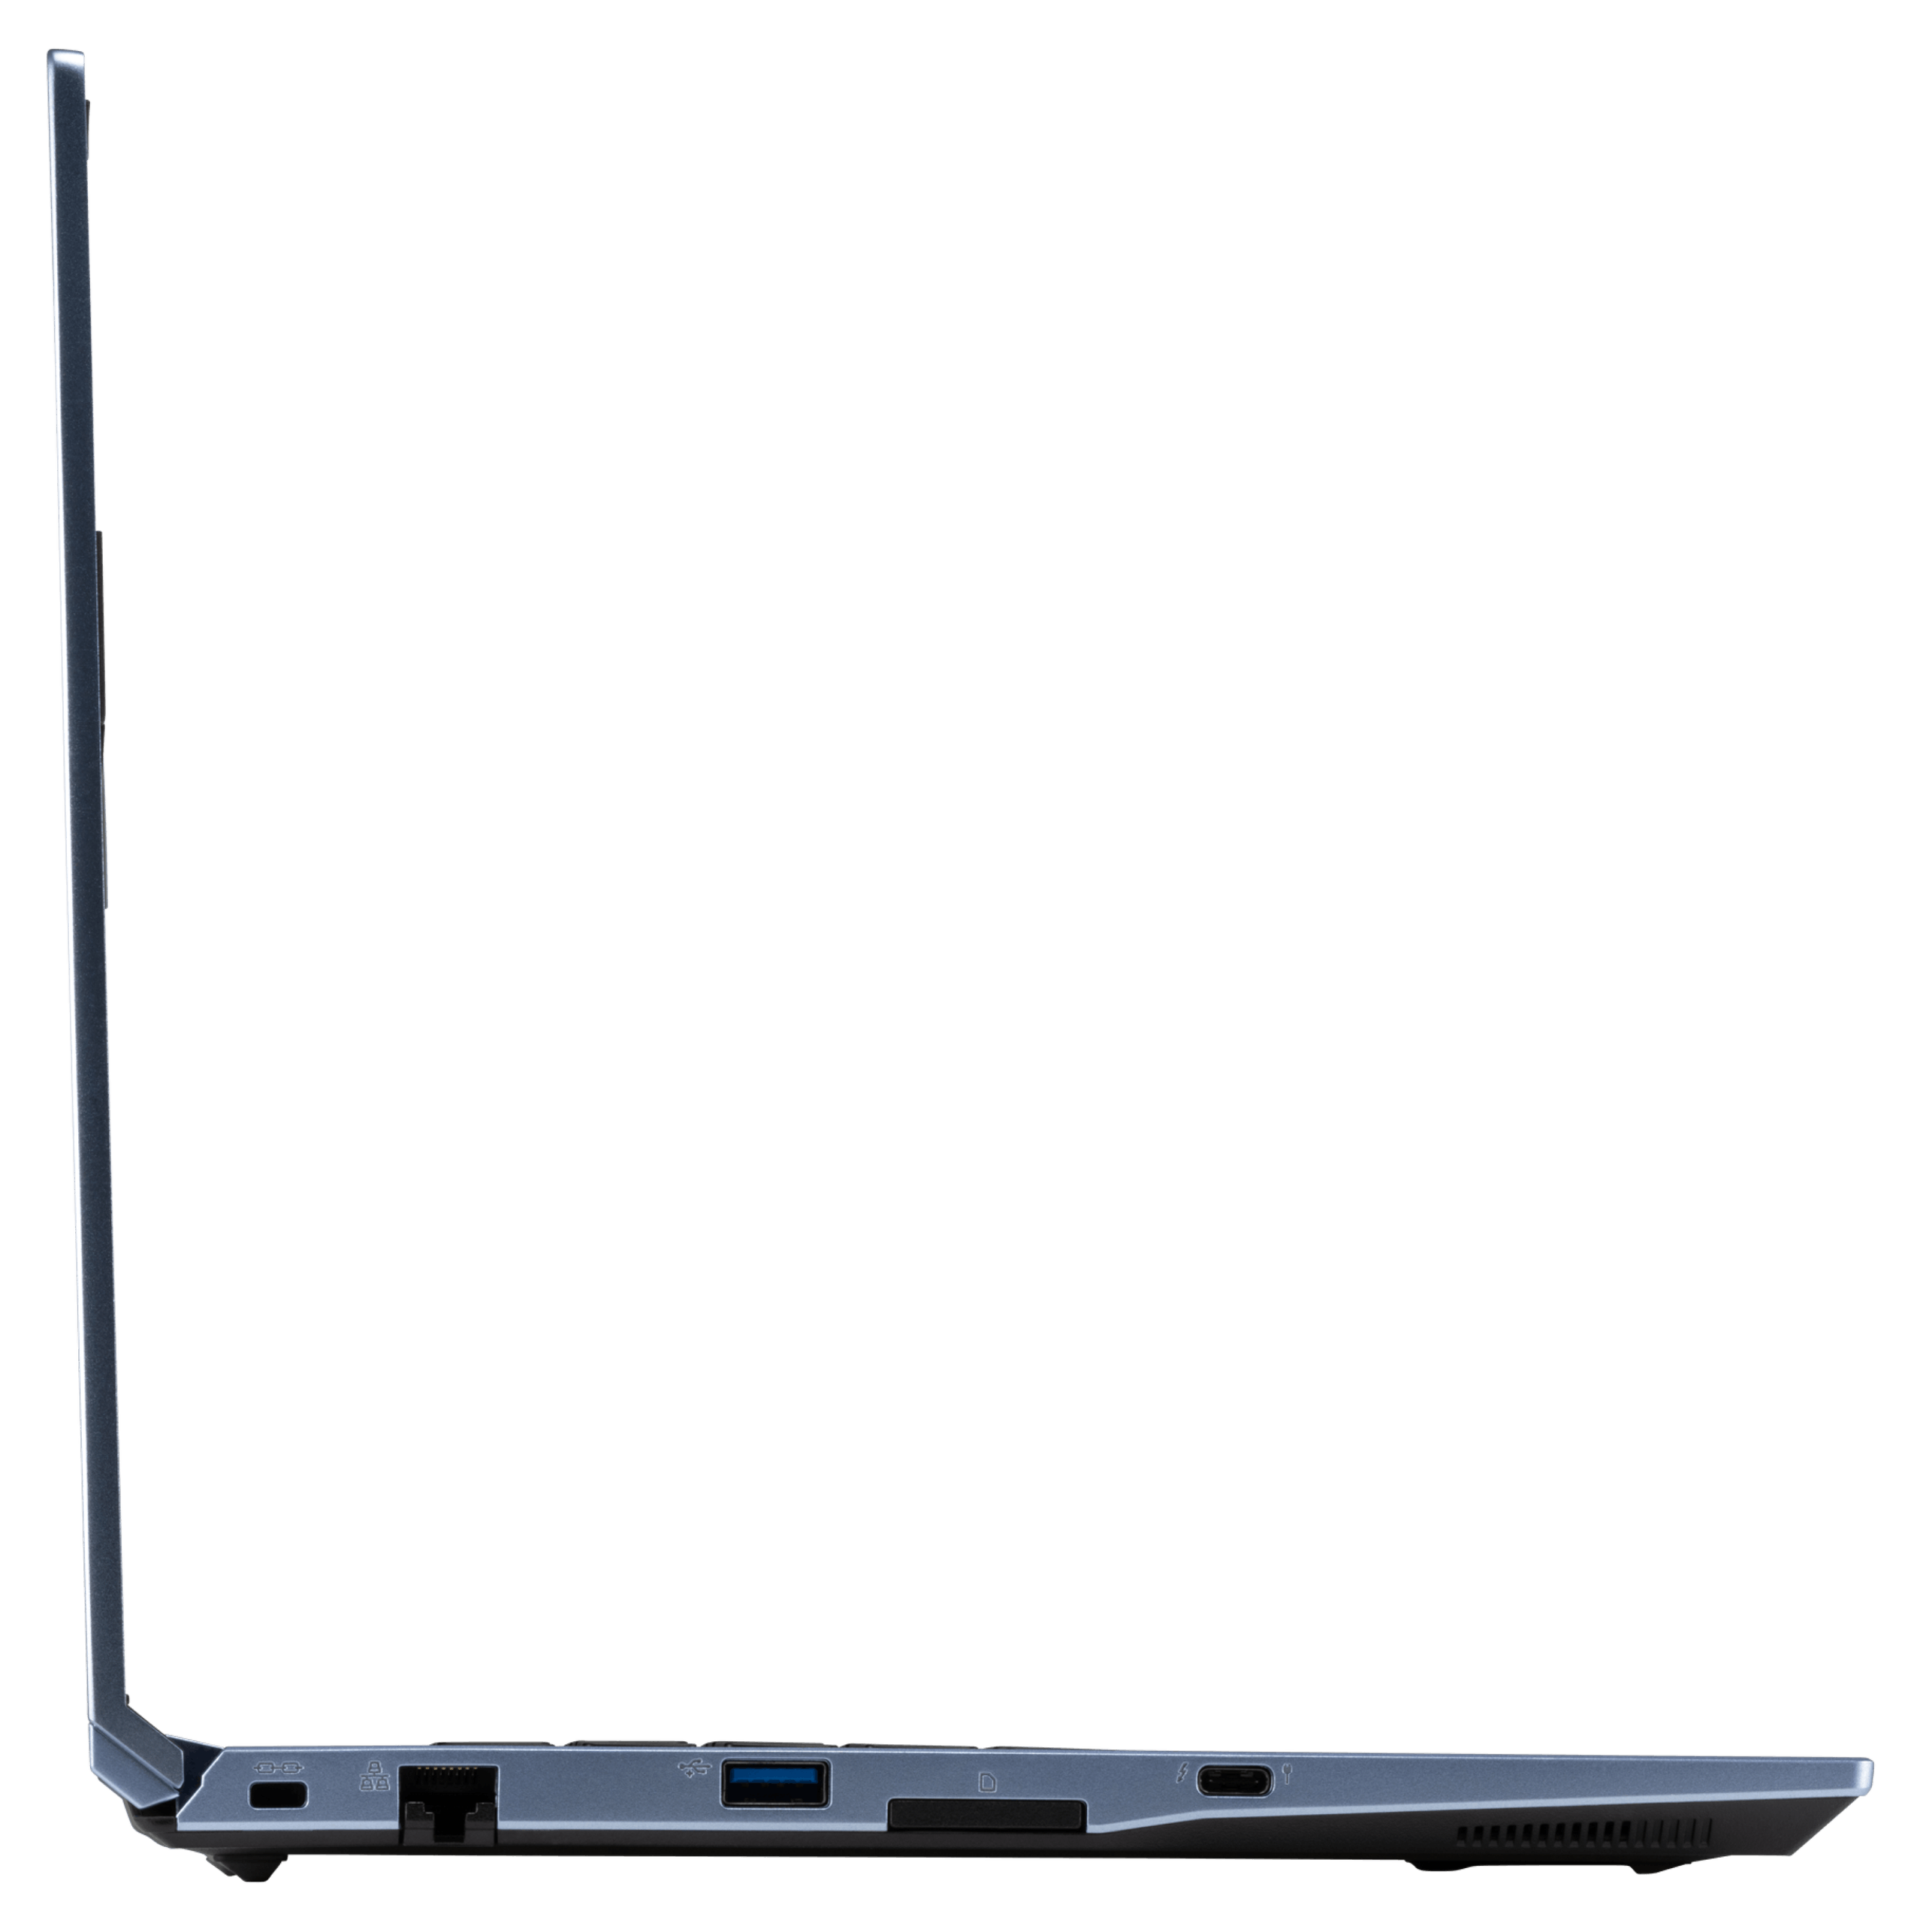 A left profile view of the Galago Pro laptop's ports, namely Kensington Lock, Ethernet, USB, SD card slot, and Thunderbolt.